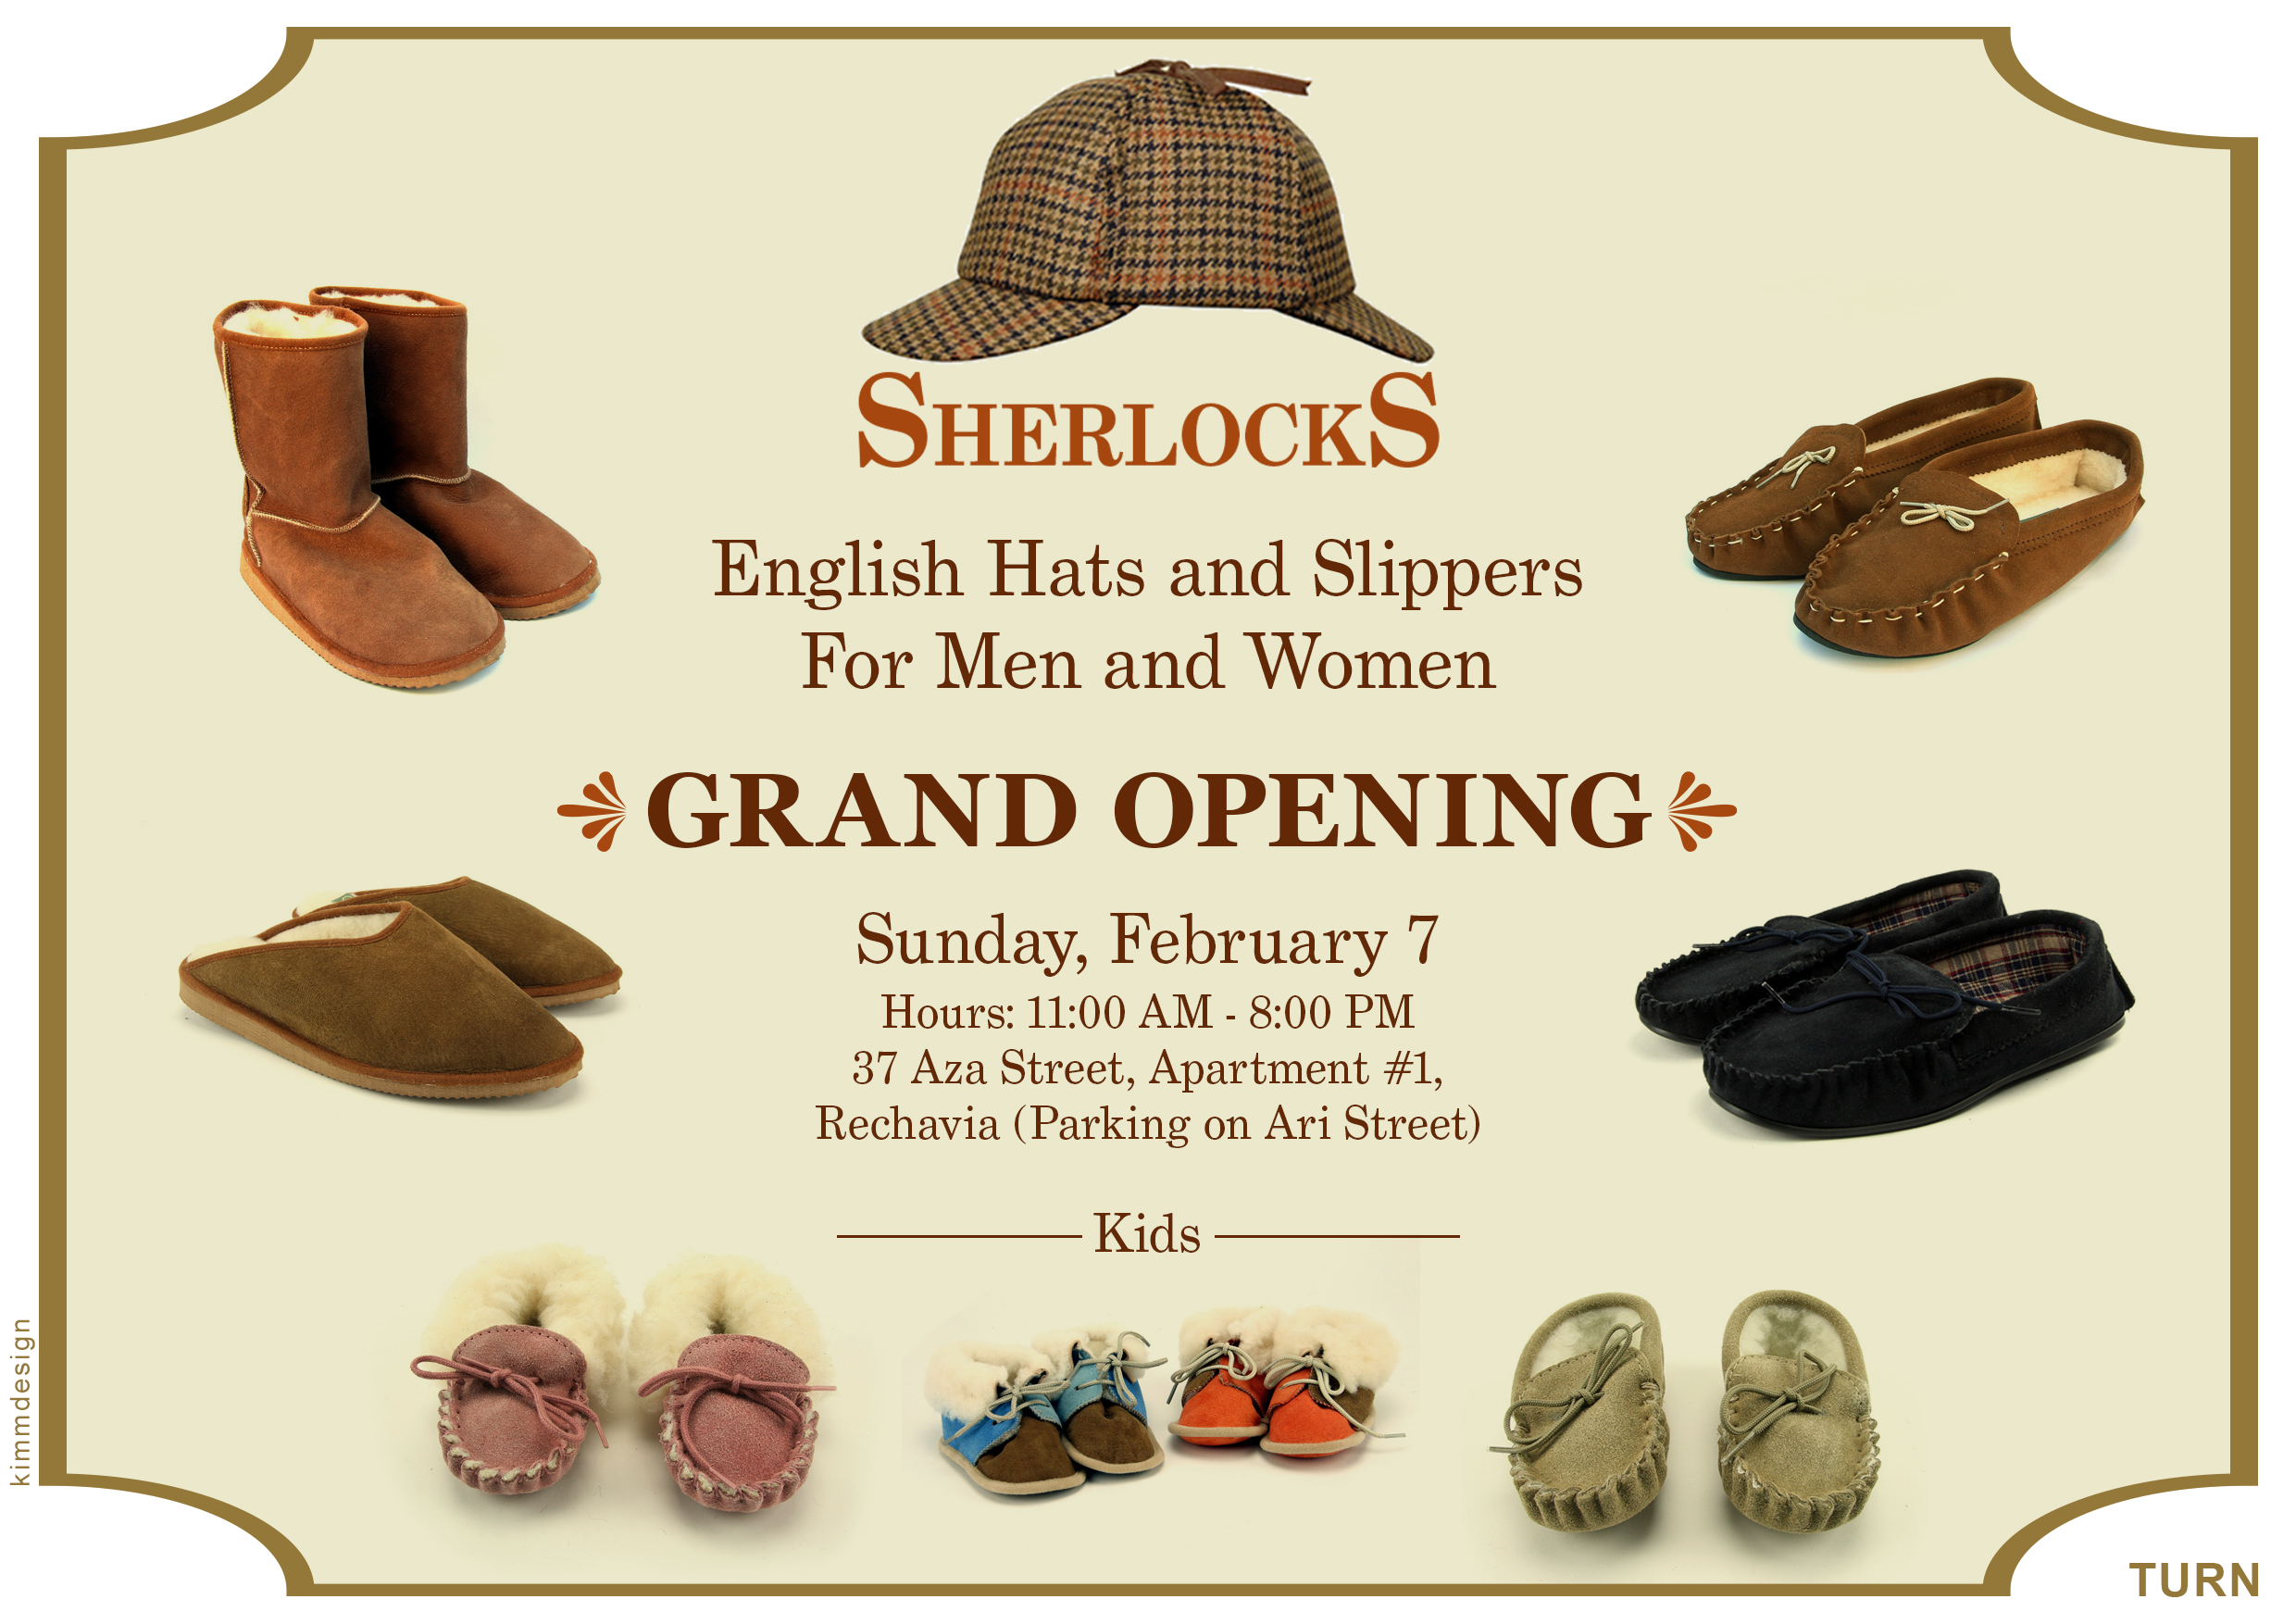 image of Sherlocks flier showing hats and slippers